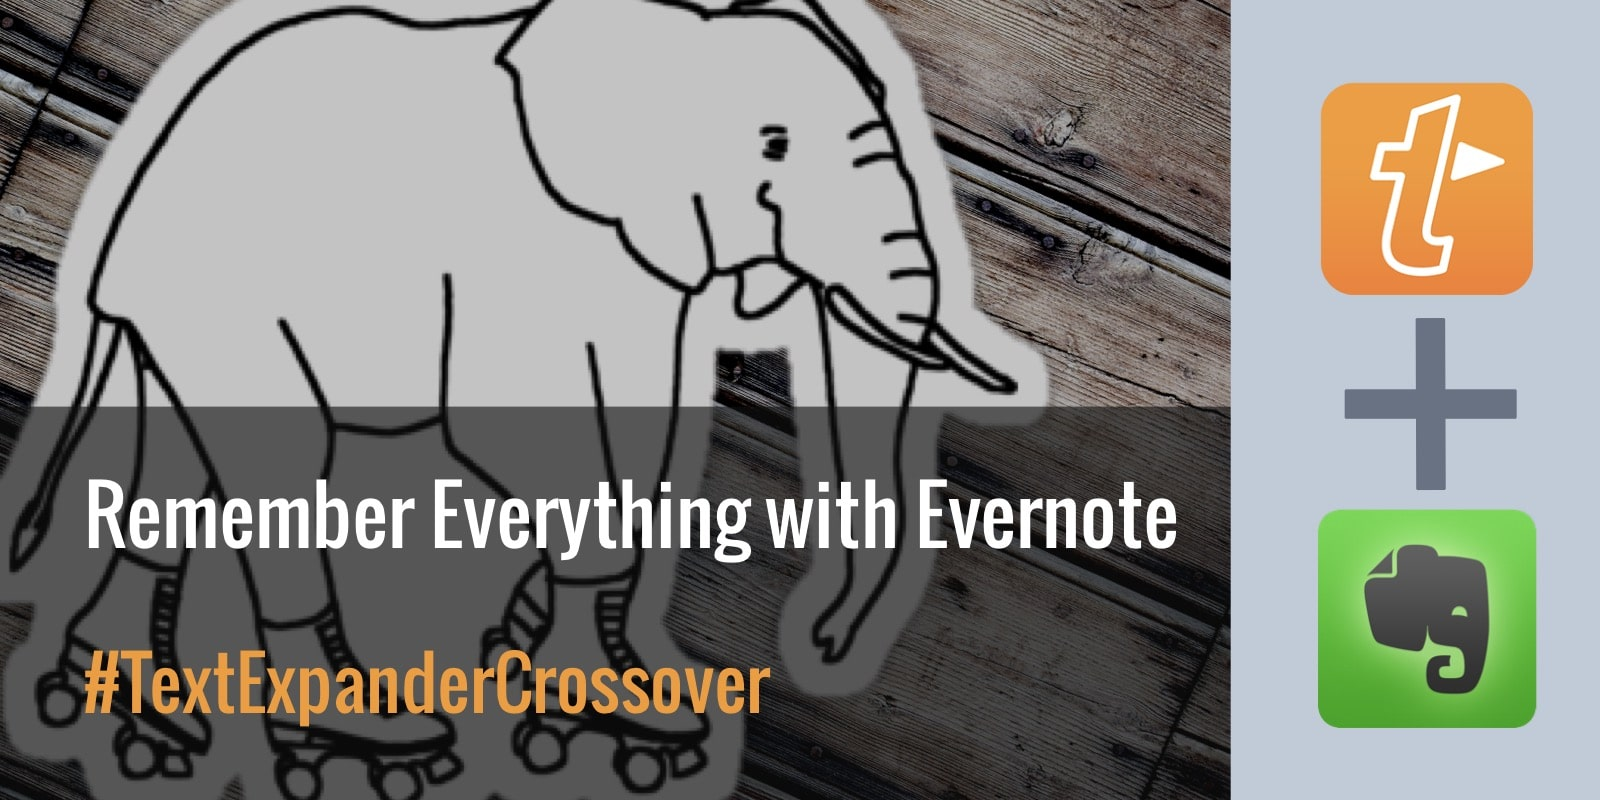 TextExpander Crossover: Remember everything with Evernote | TextExpander